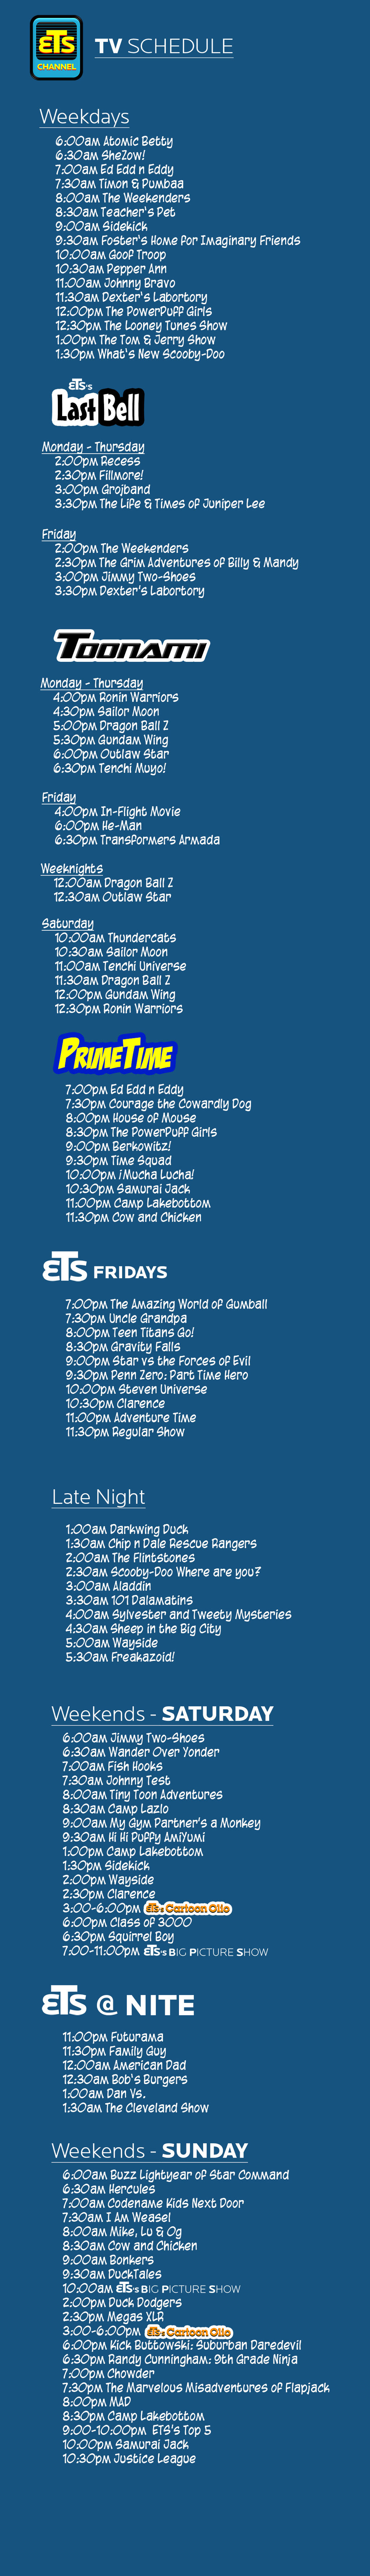 ETS Channel TV Schedule by ETSChannel on DeviantArt